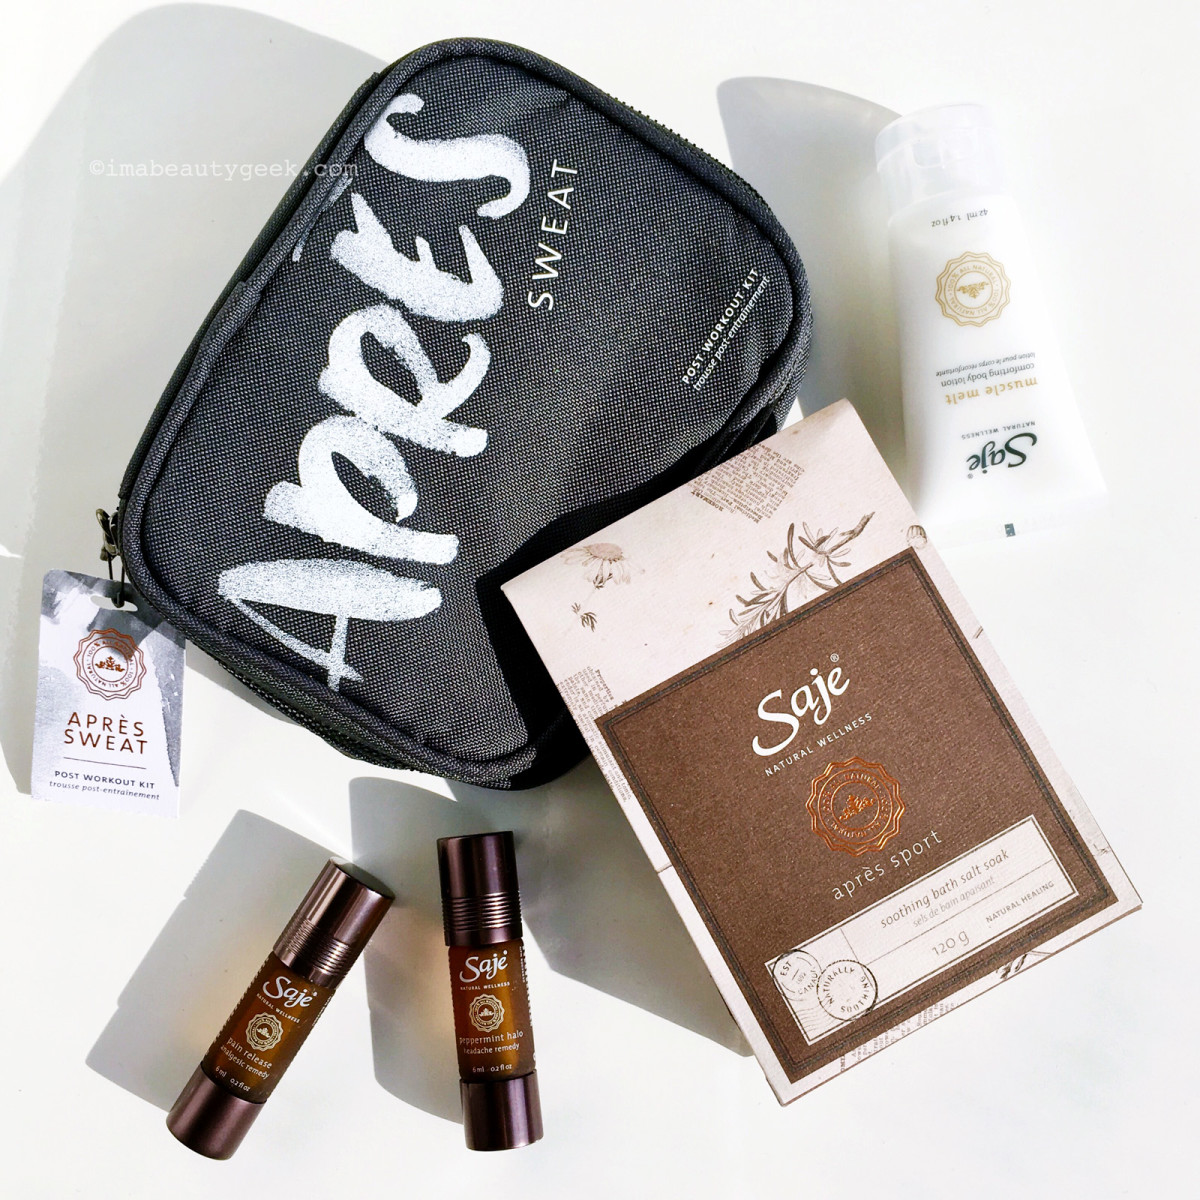 Saje Après Sweat Kit with bath soak, muscle-melt lotion, massage oil and soothing peppermint halo.